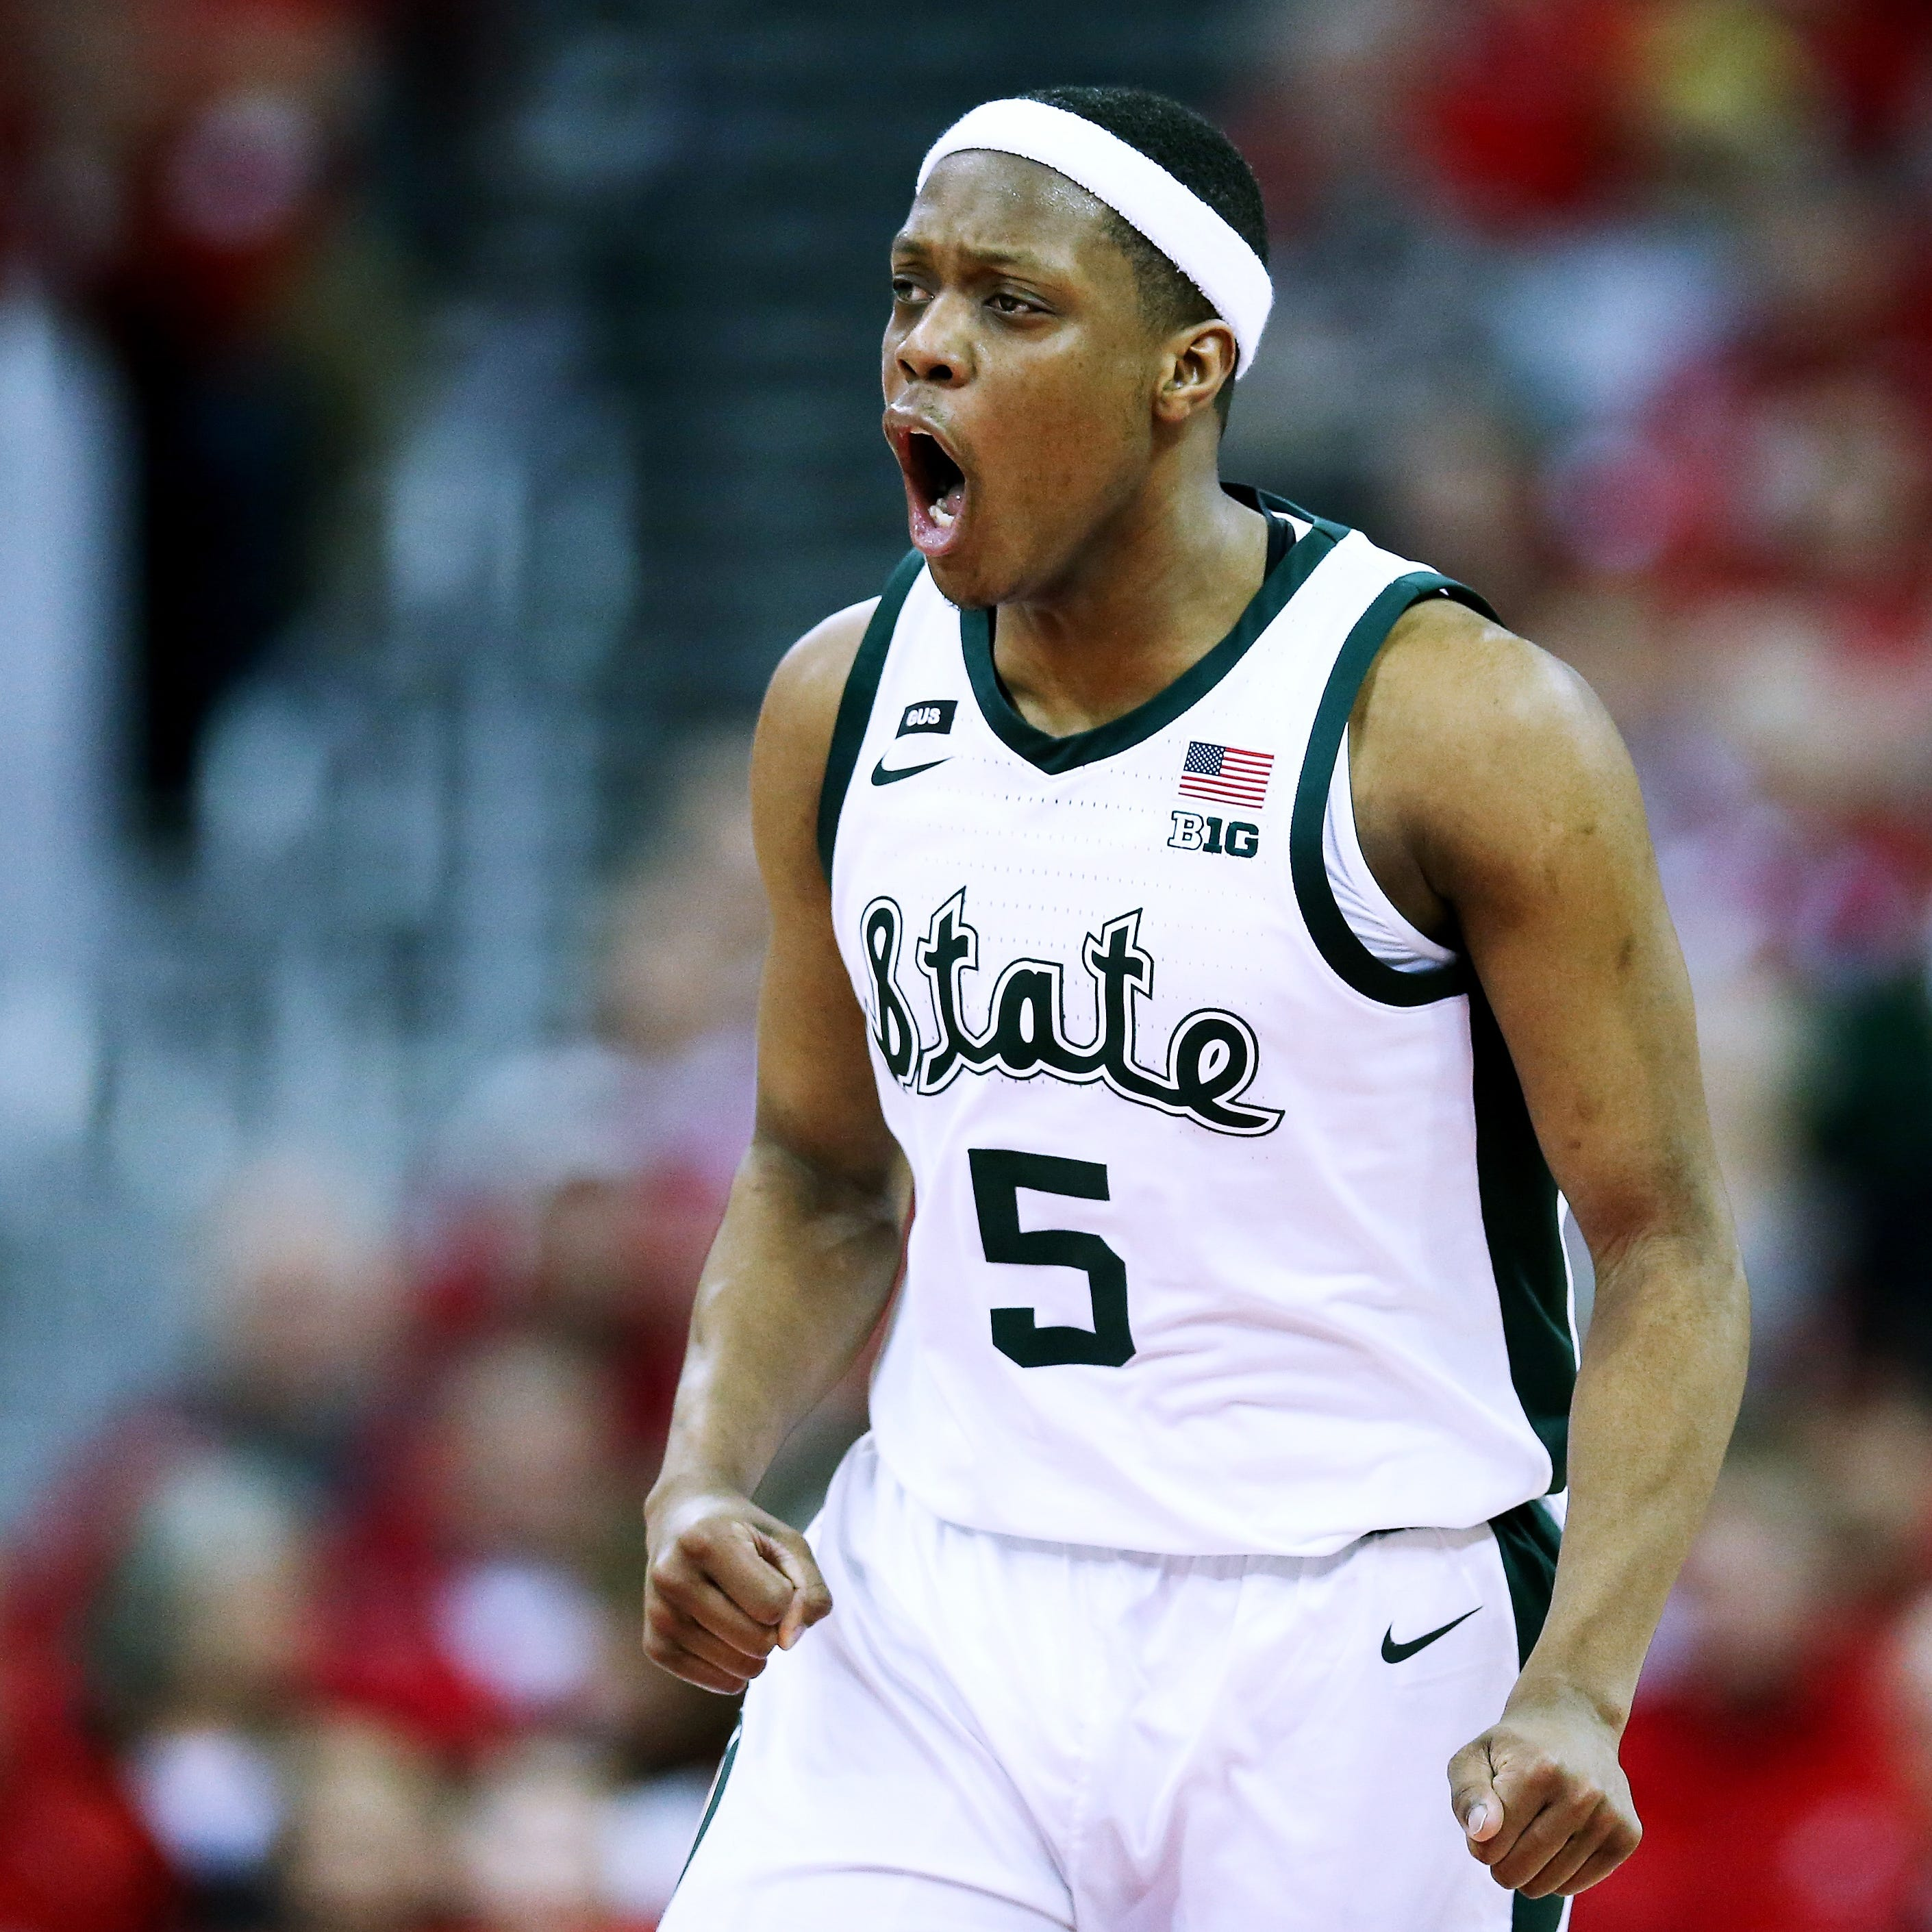 'It was a war': No. 11 Michigan State claws way to road win over No. 20 Wisconsin